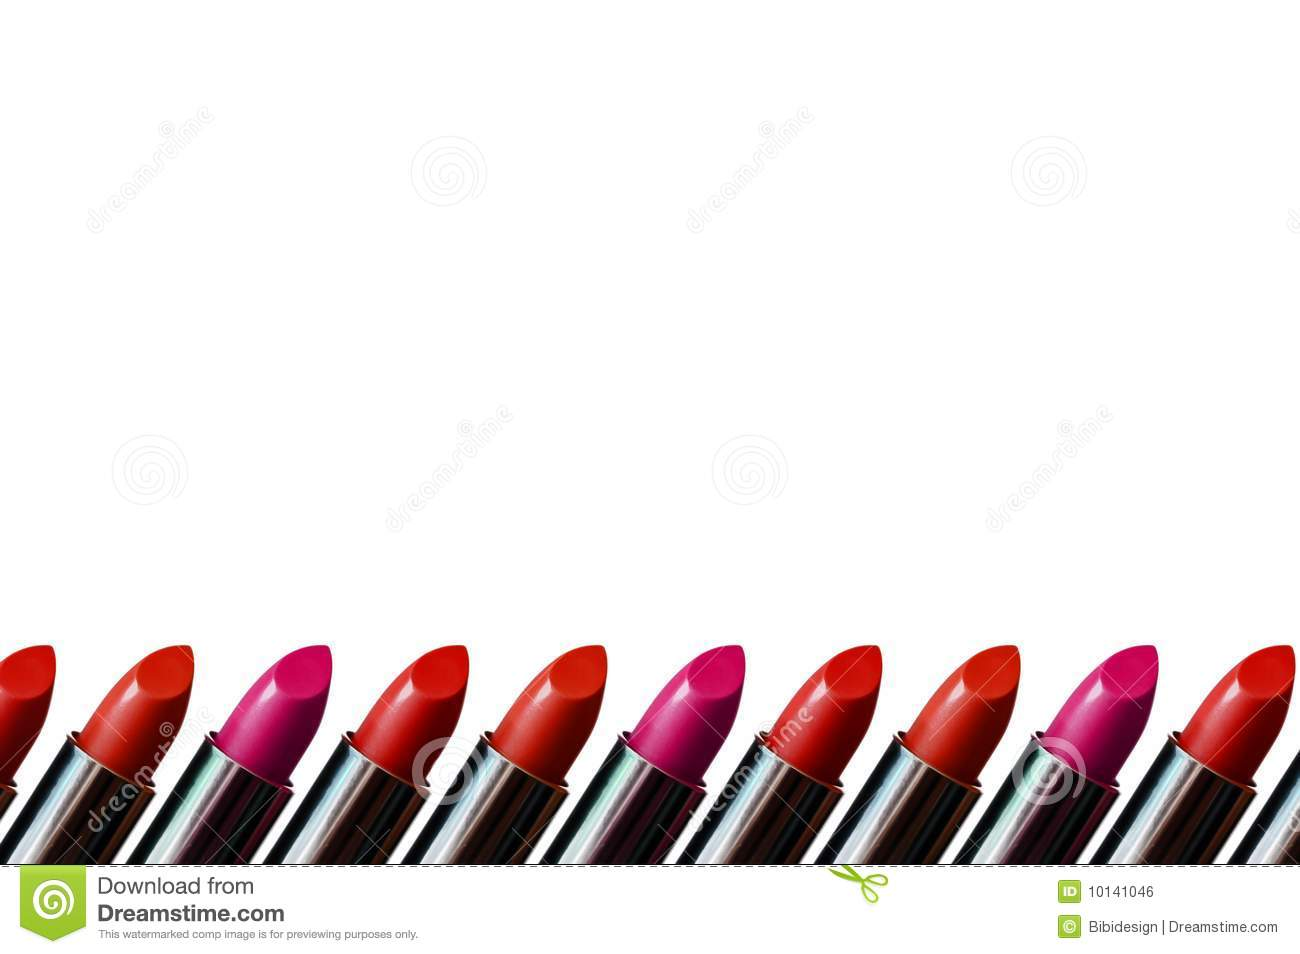 Lipstick Border Royalty Free Stock Image - Image: 10141046